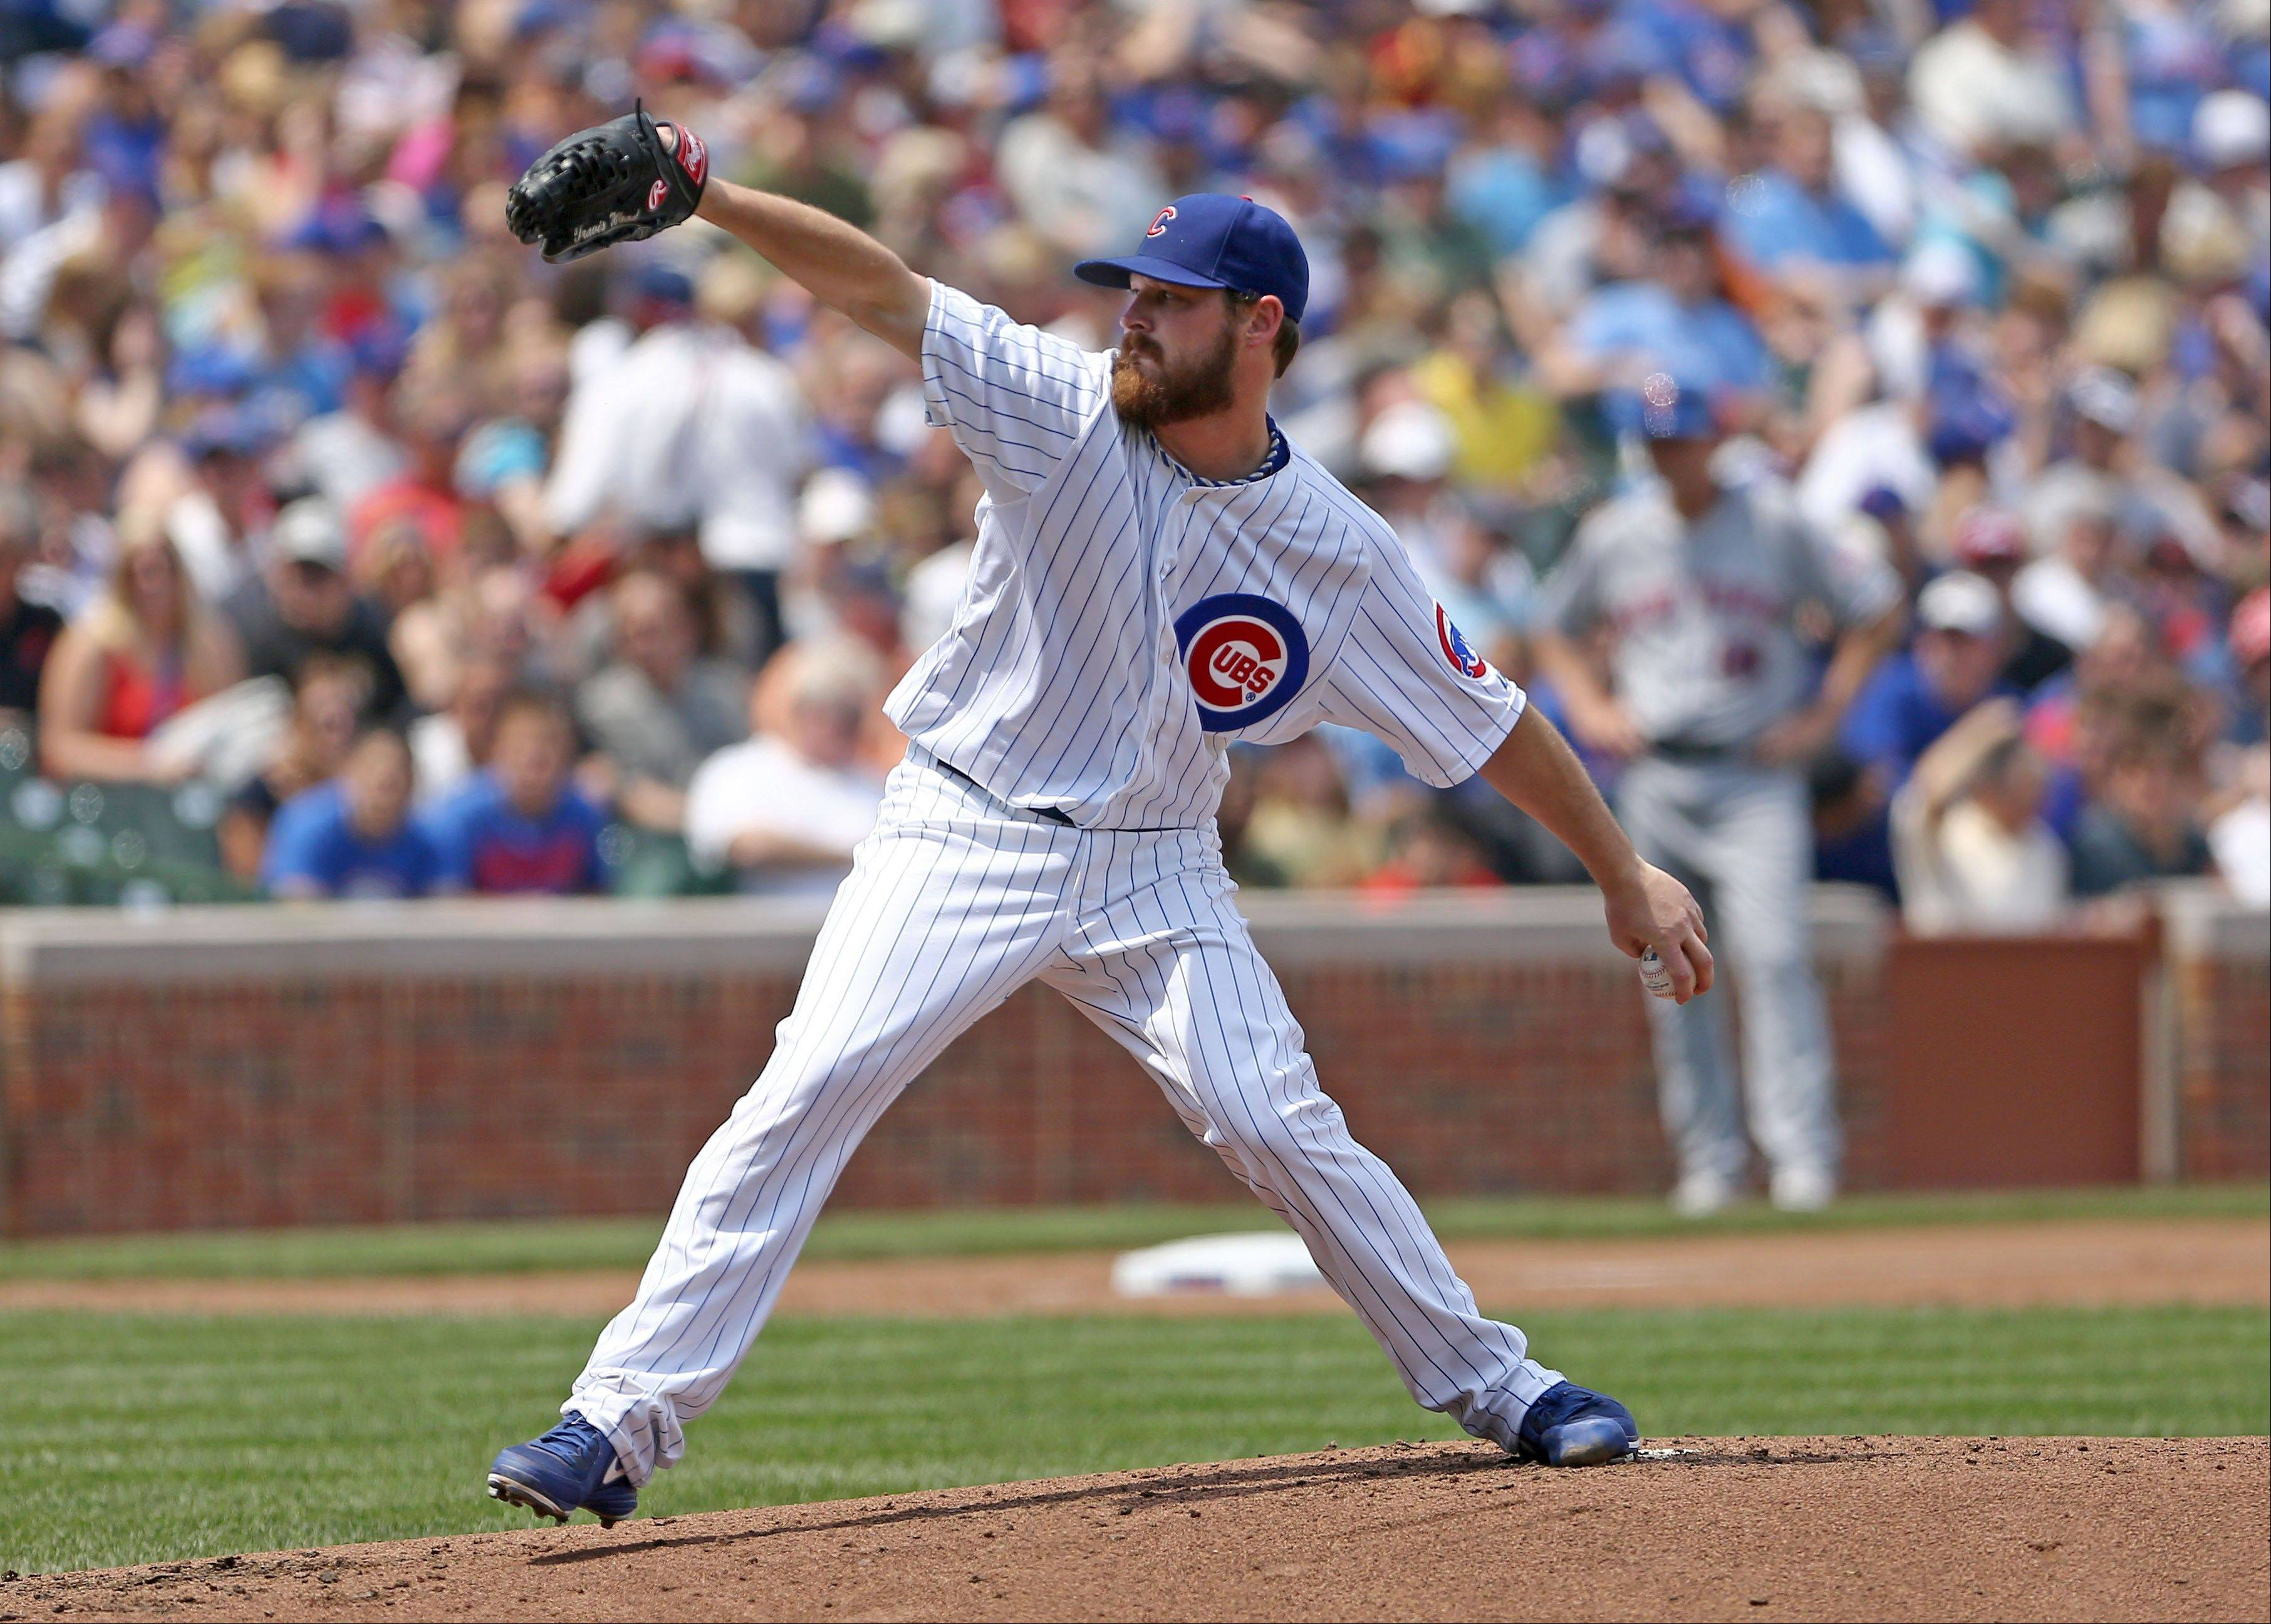 Cubs' Wood rues pitch that got away